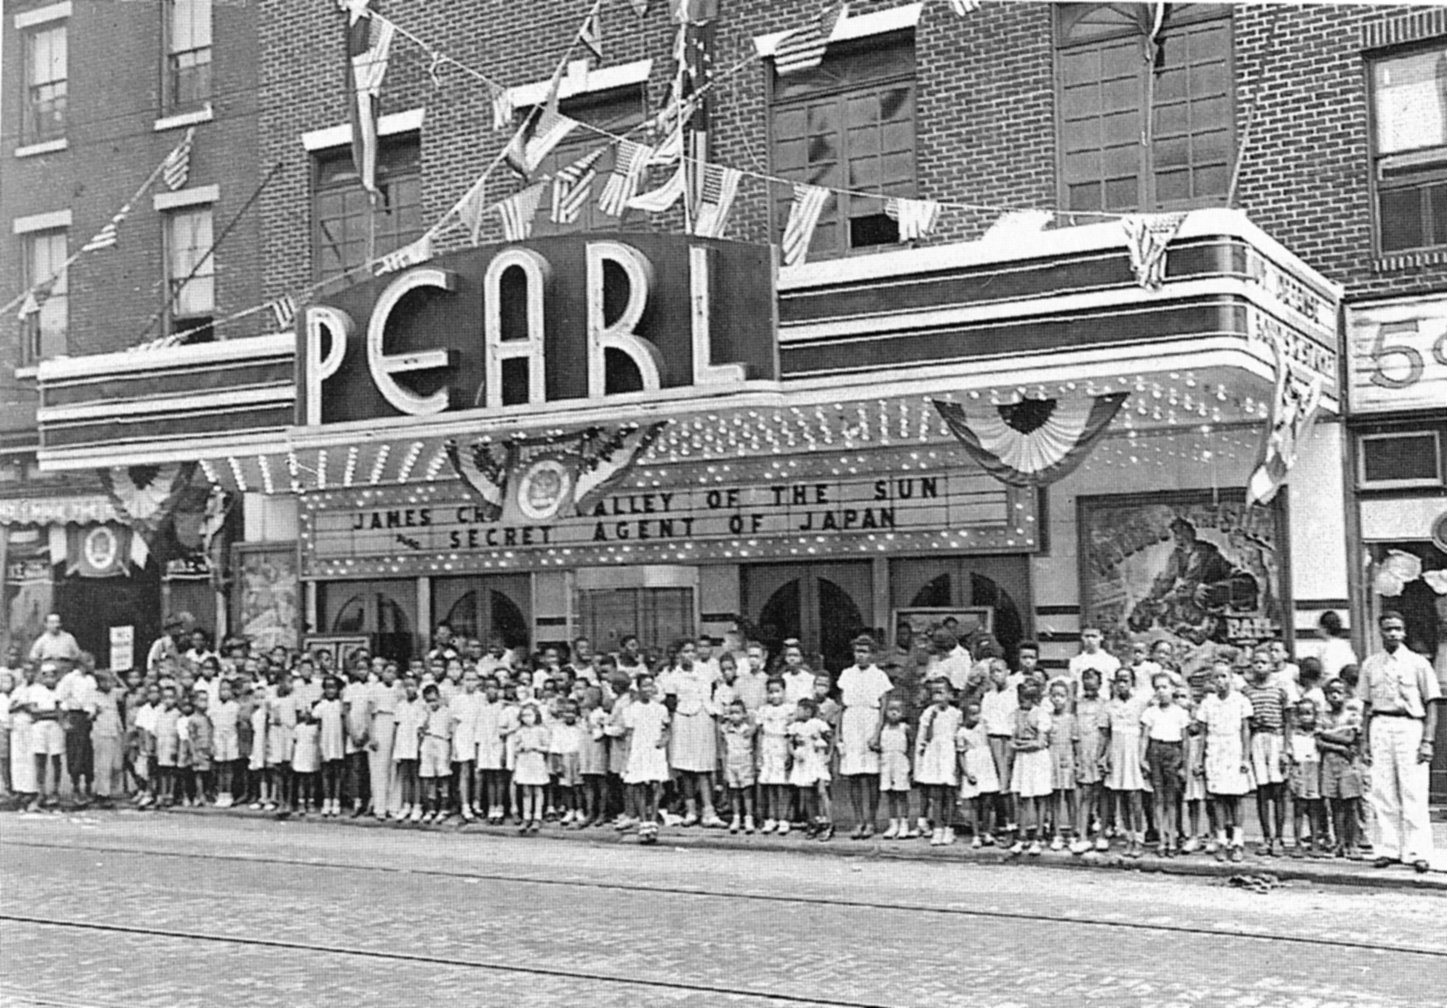 pearl theater early 1900s philadelphia theaters